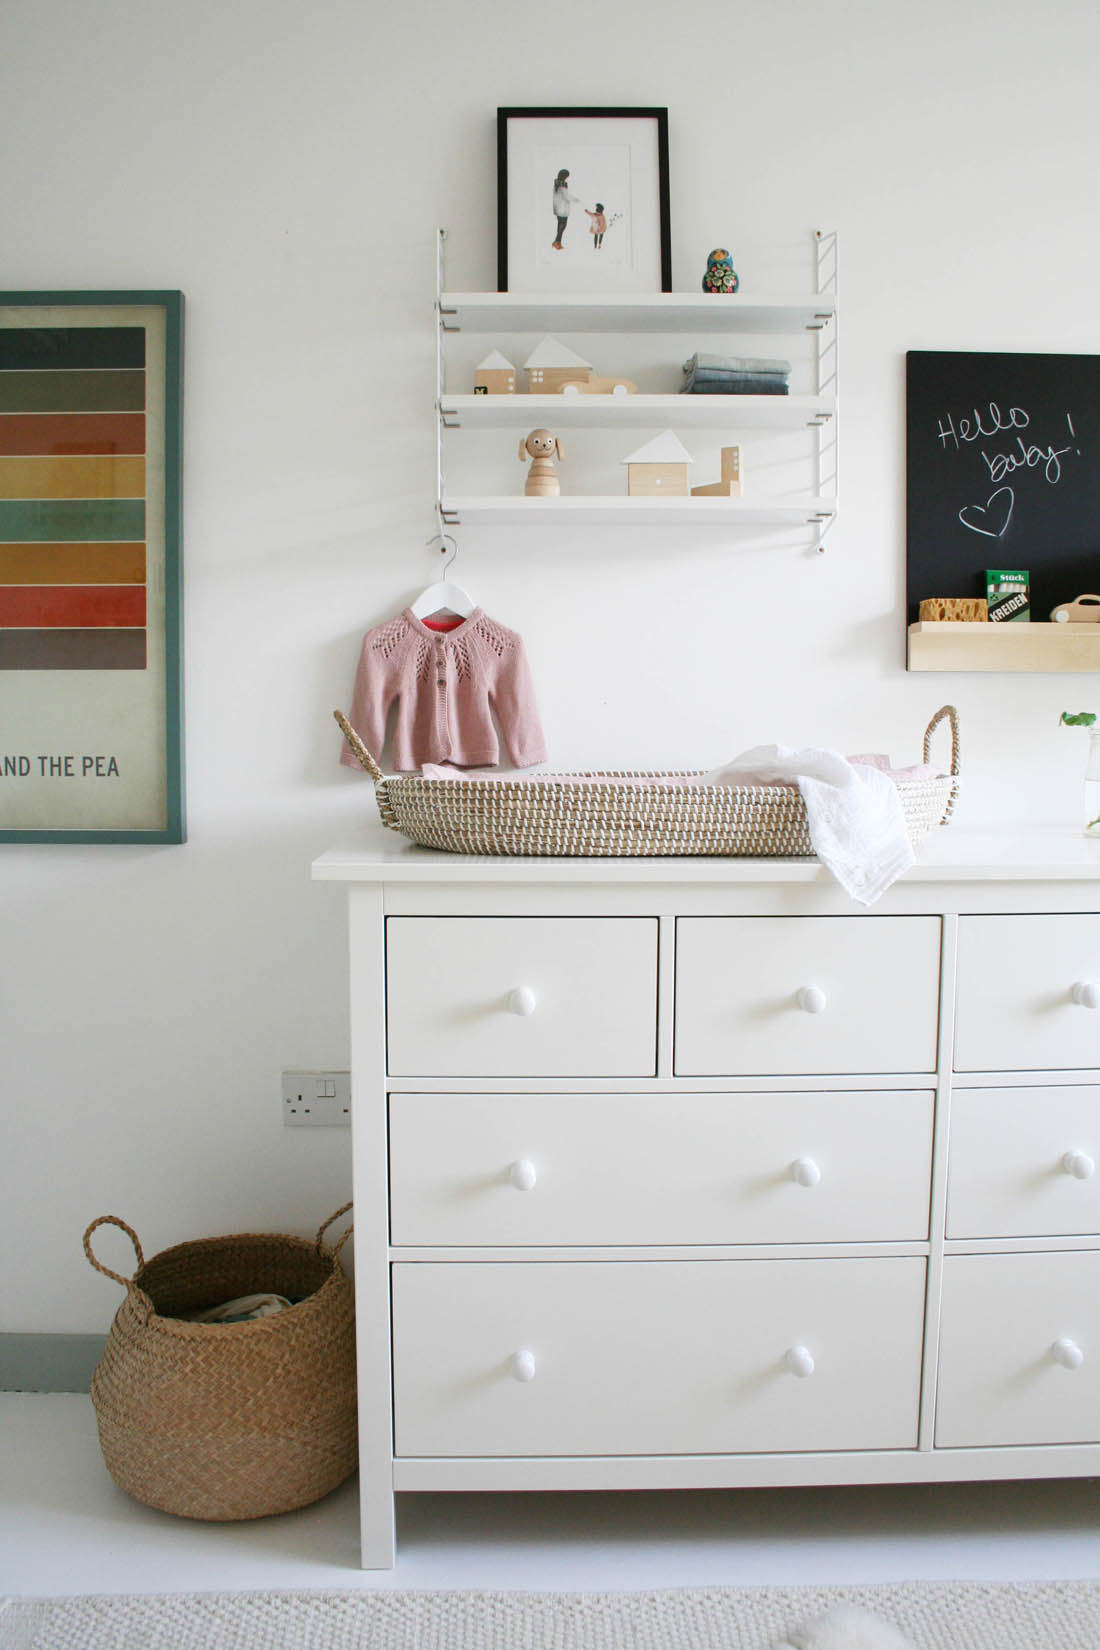 Nursery tour | Pocket string shelf and reva changing basket | Pinch toys wooden toys | Hemnes chest of drawers from IKEA | Apartment Apothecary